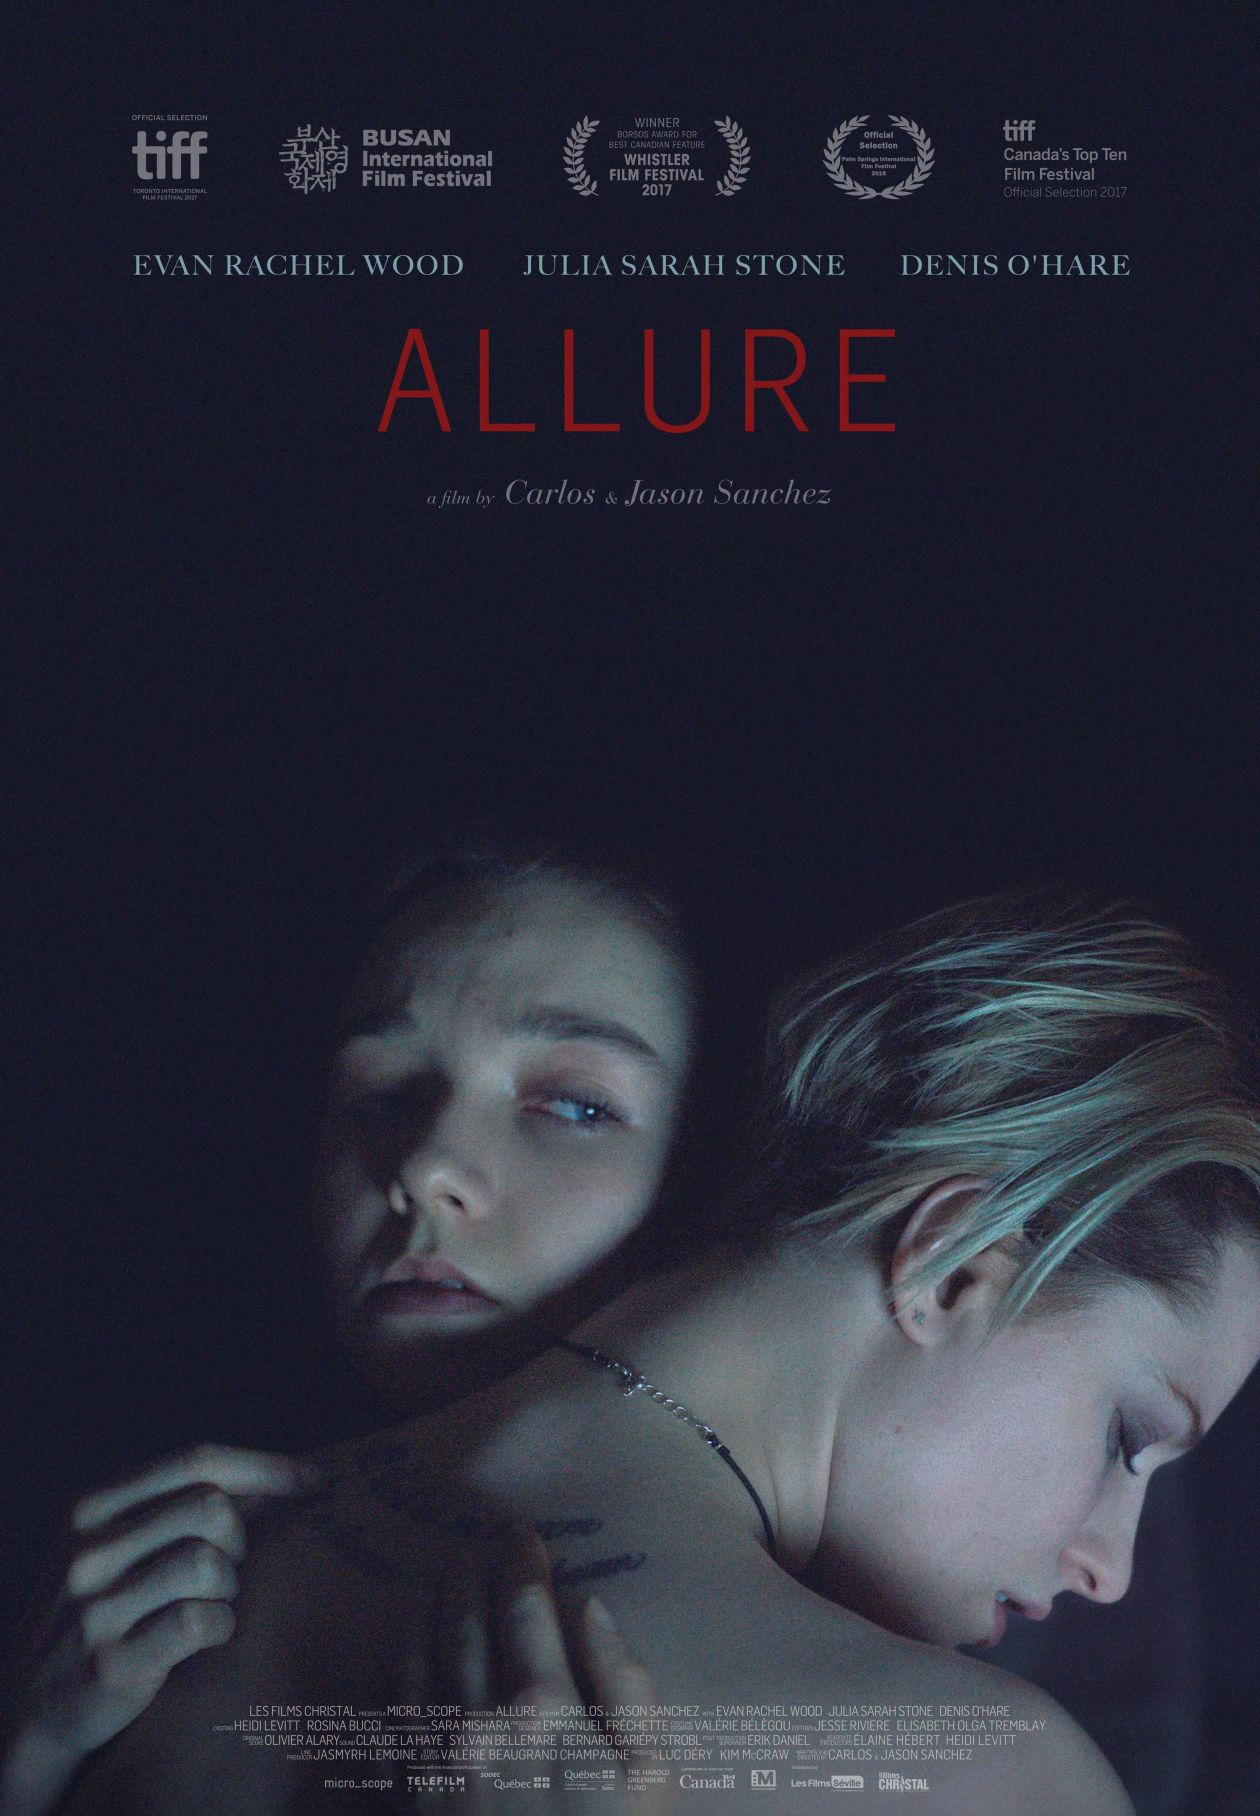 Evan Rachel Wood / Julia Sarah Stone actresses | Allure / Carlos Sanchez, Jason Sanchez 2017 / Movie Poster / Affiche film